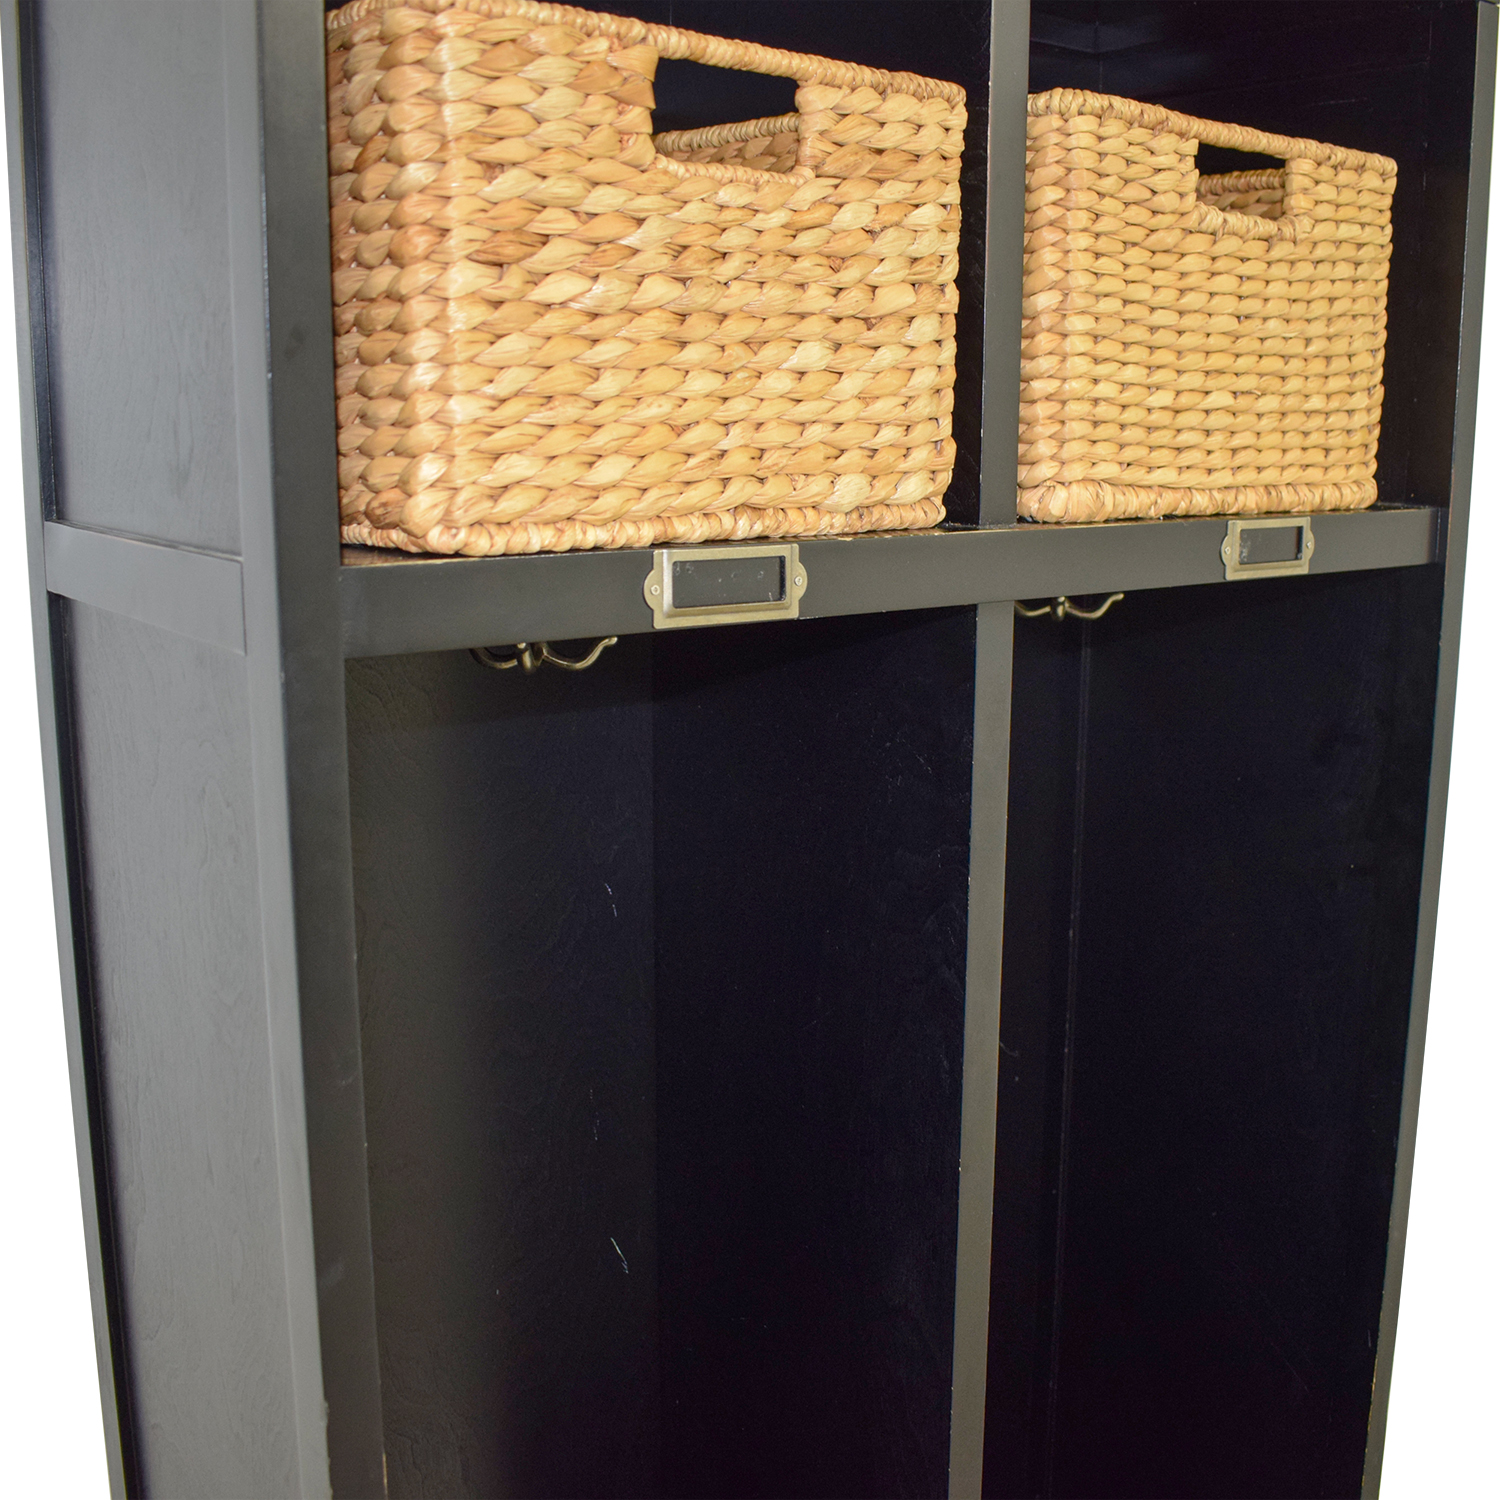 Pottery Barn Pottery Barn Single Drawer Mud Room Lockers with Wicker Baskets dimensions